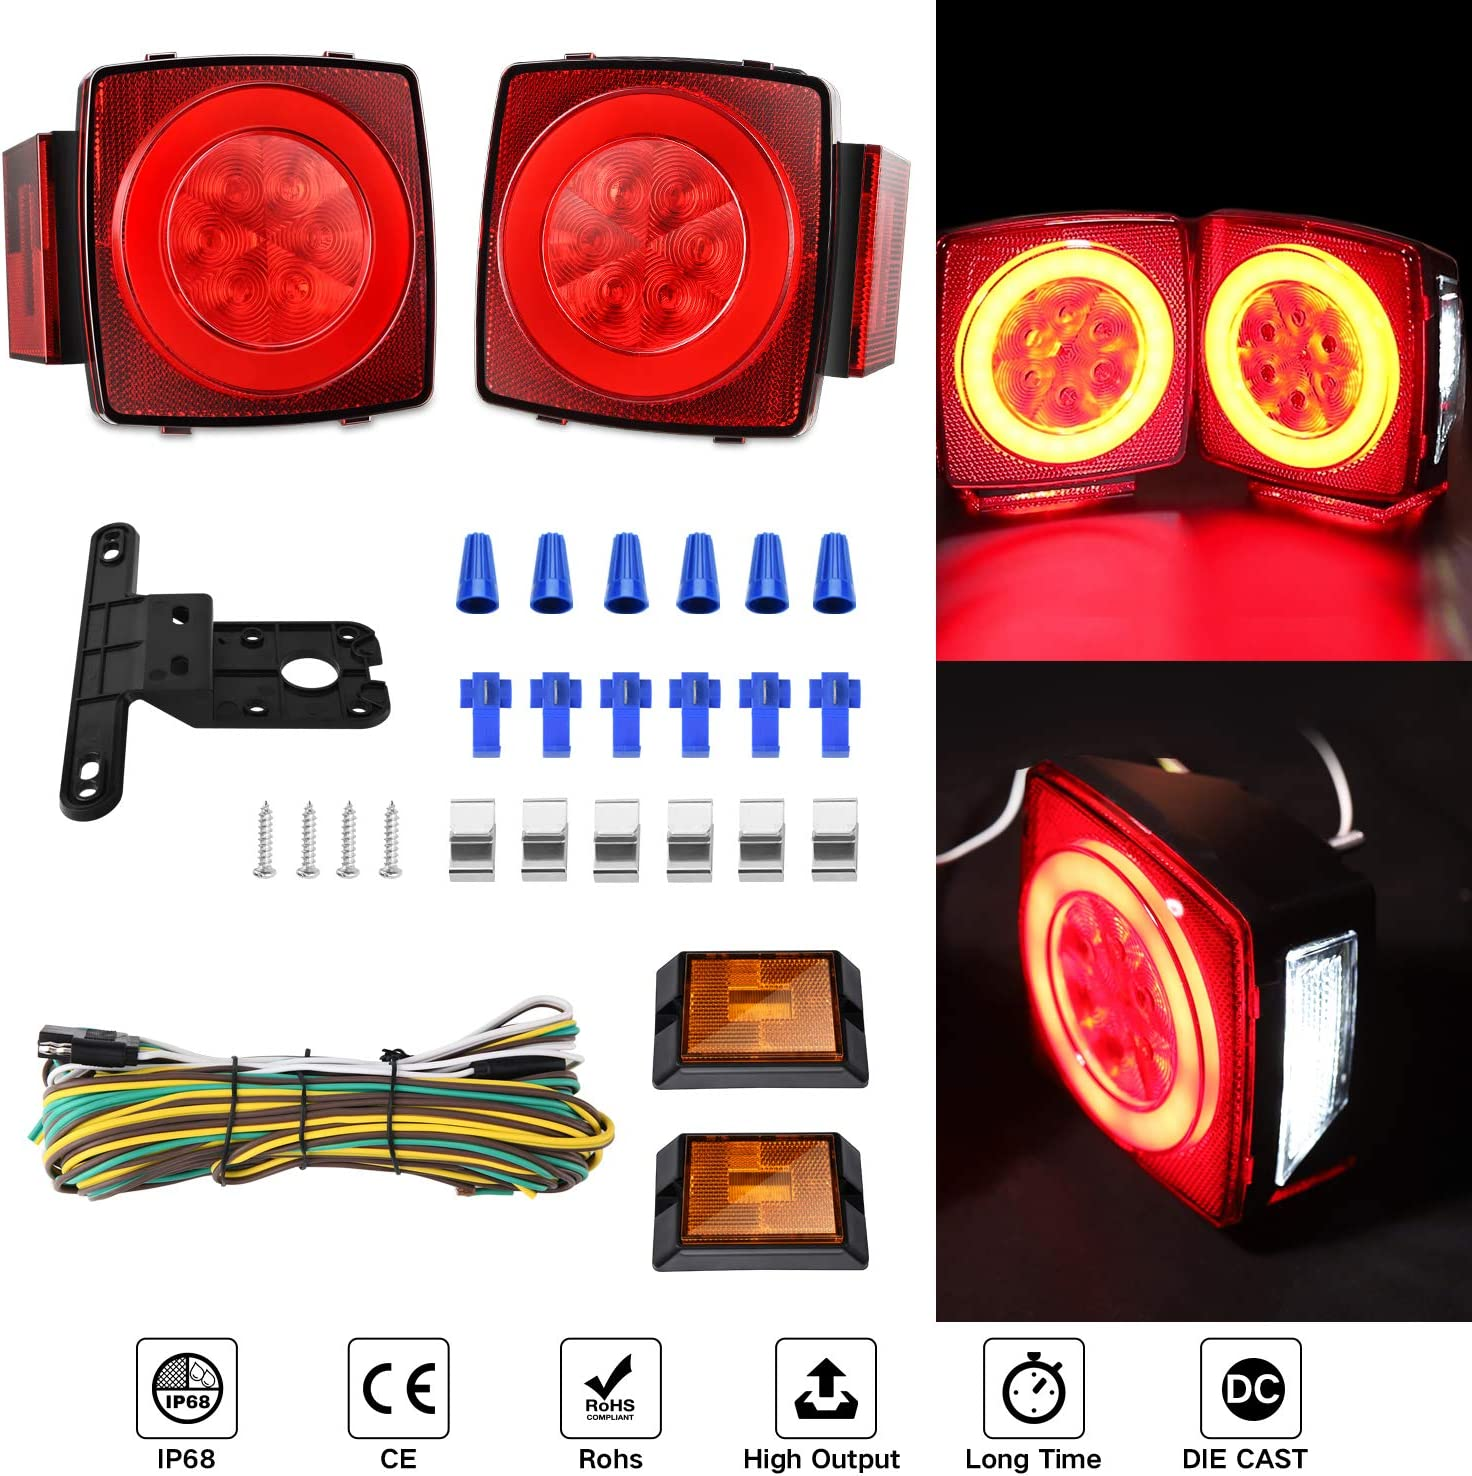 IP68 Waterproof Boat Submersible Trailer Tail Light Utility Led Trailer Lights and Wiring Kit for Camper Truck RV Marine Snowmobile Under 80 Inch Kohree 2019 New 12V Led Trailer Light Kit